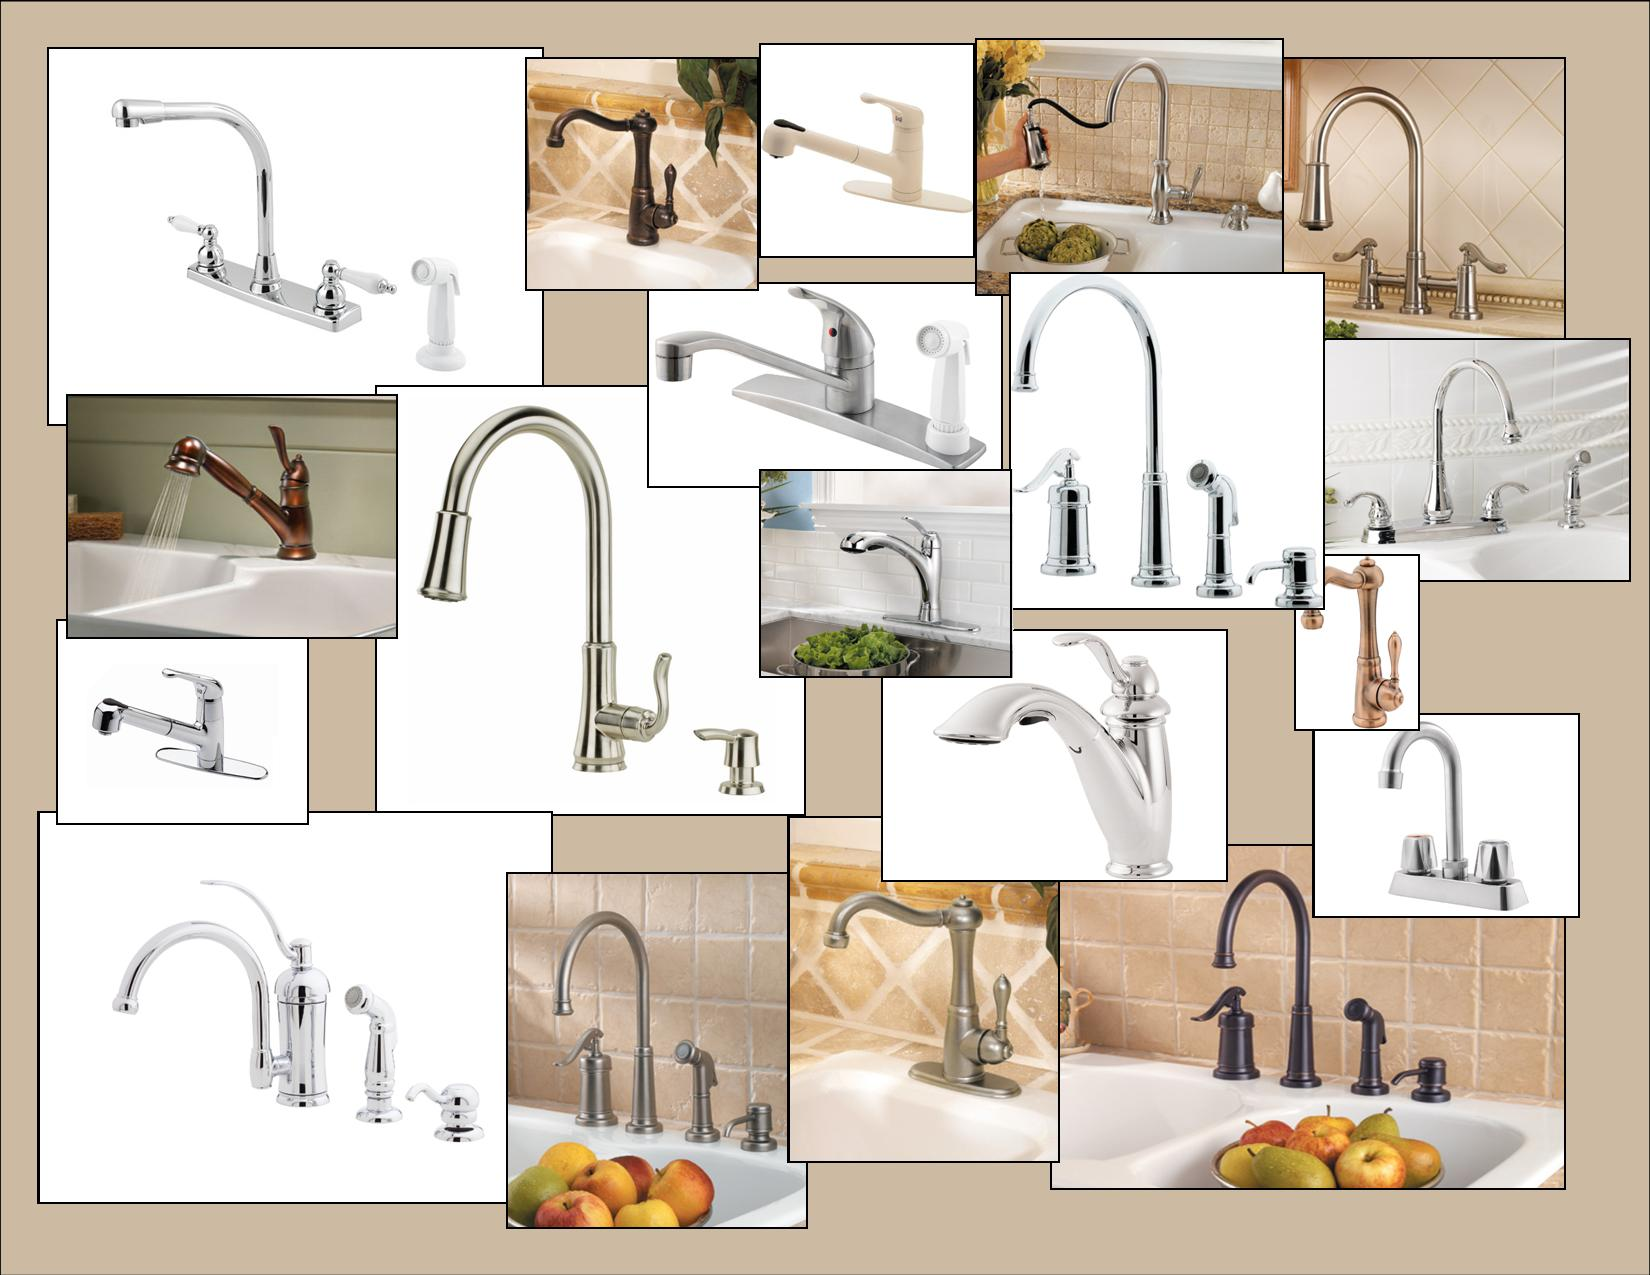 Perfect Discount Kitchen And Bathroom Fixtures  Denver Plumbing Fixtures